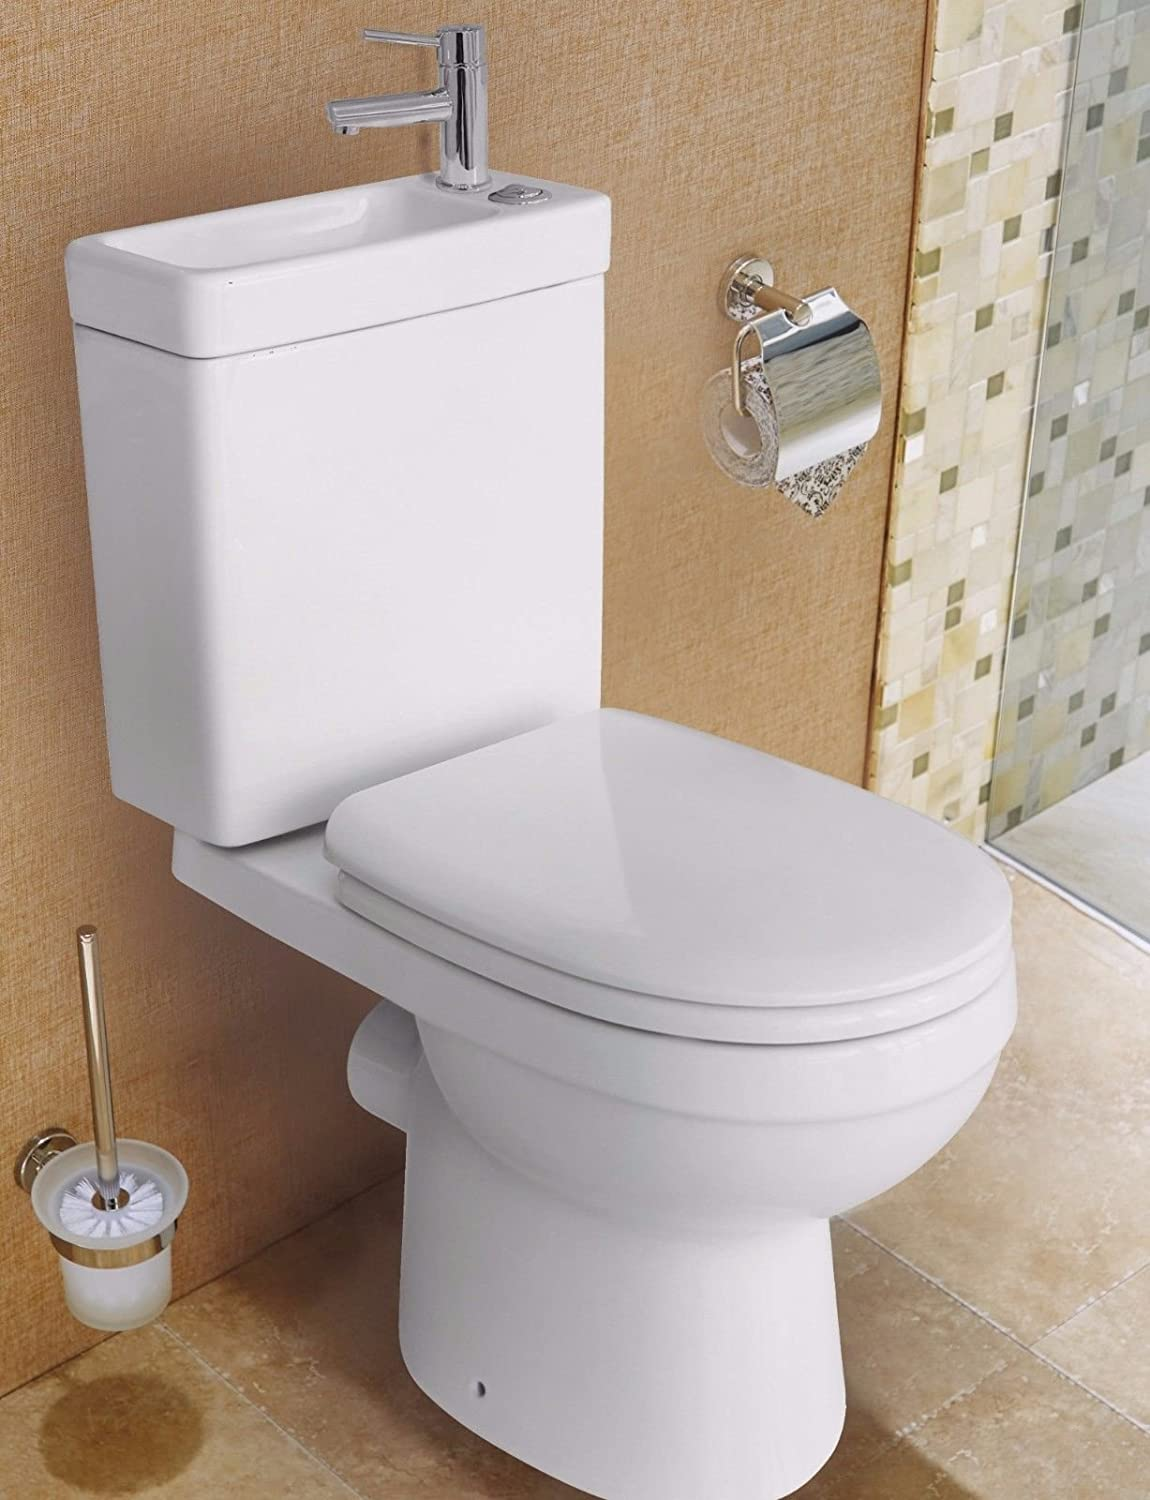 promo code b0fbc 71e63 Duo Toilet Basin Combo Combined Toilet With Sink Tap Space Saving Cloakroom  Unit